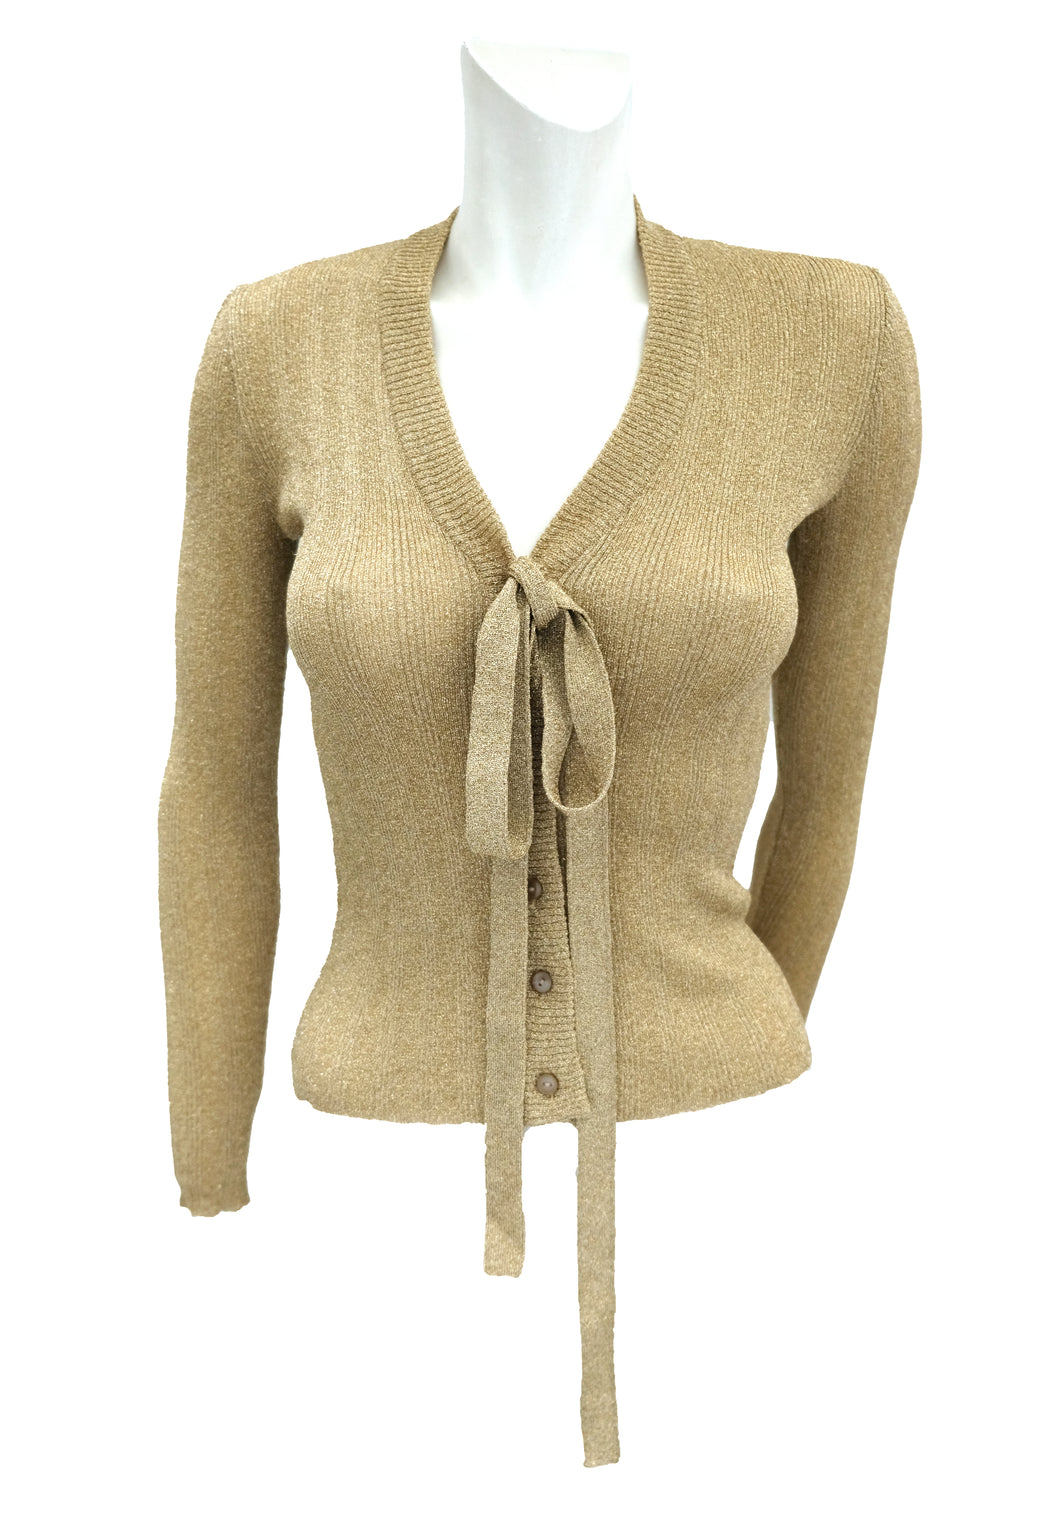 Susan Small Vintage Gold Lurex Cardigan with Tie Neck, UK8-10